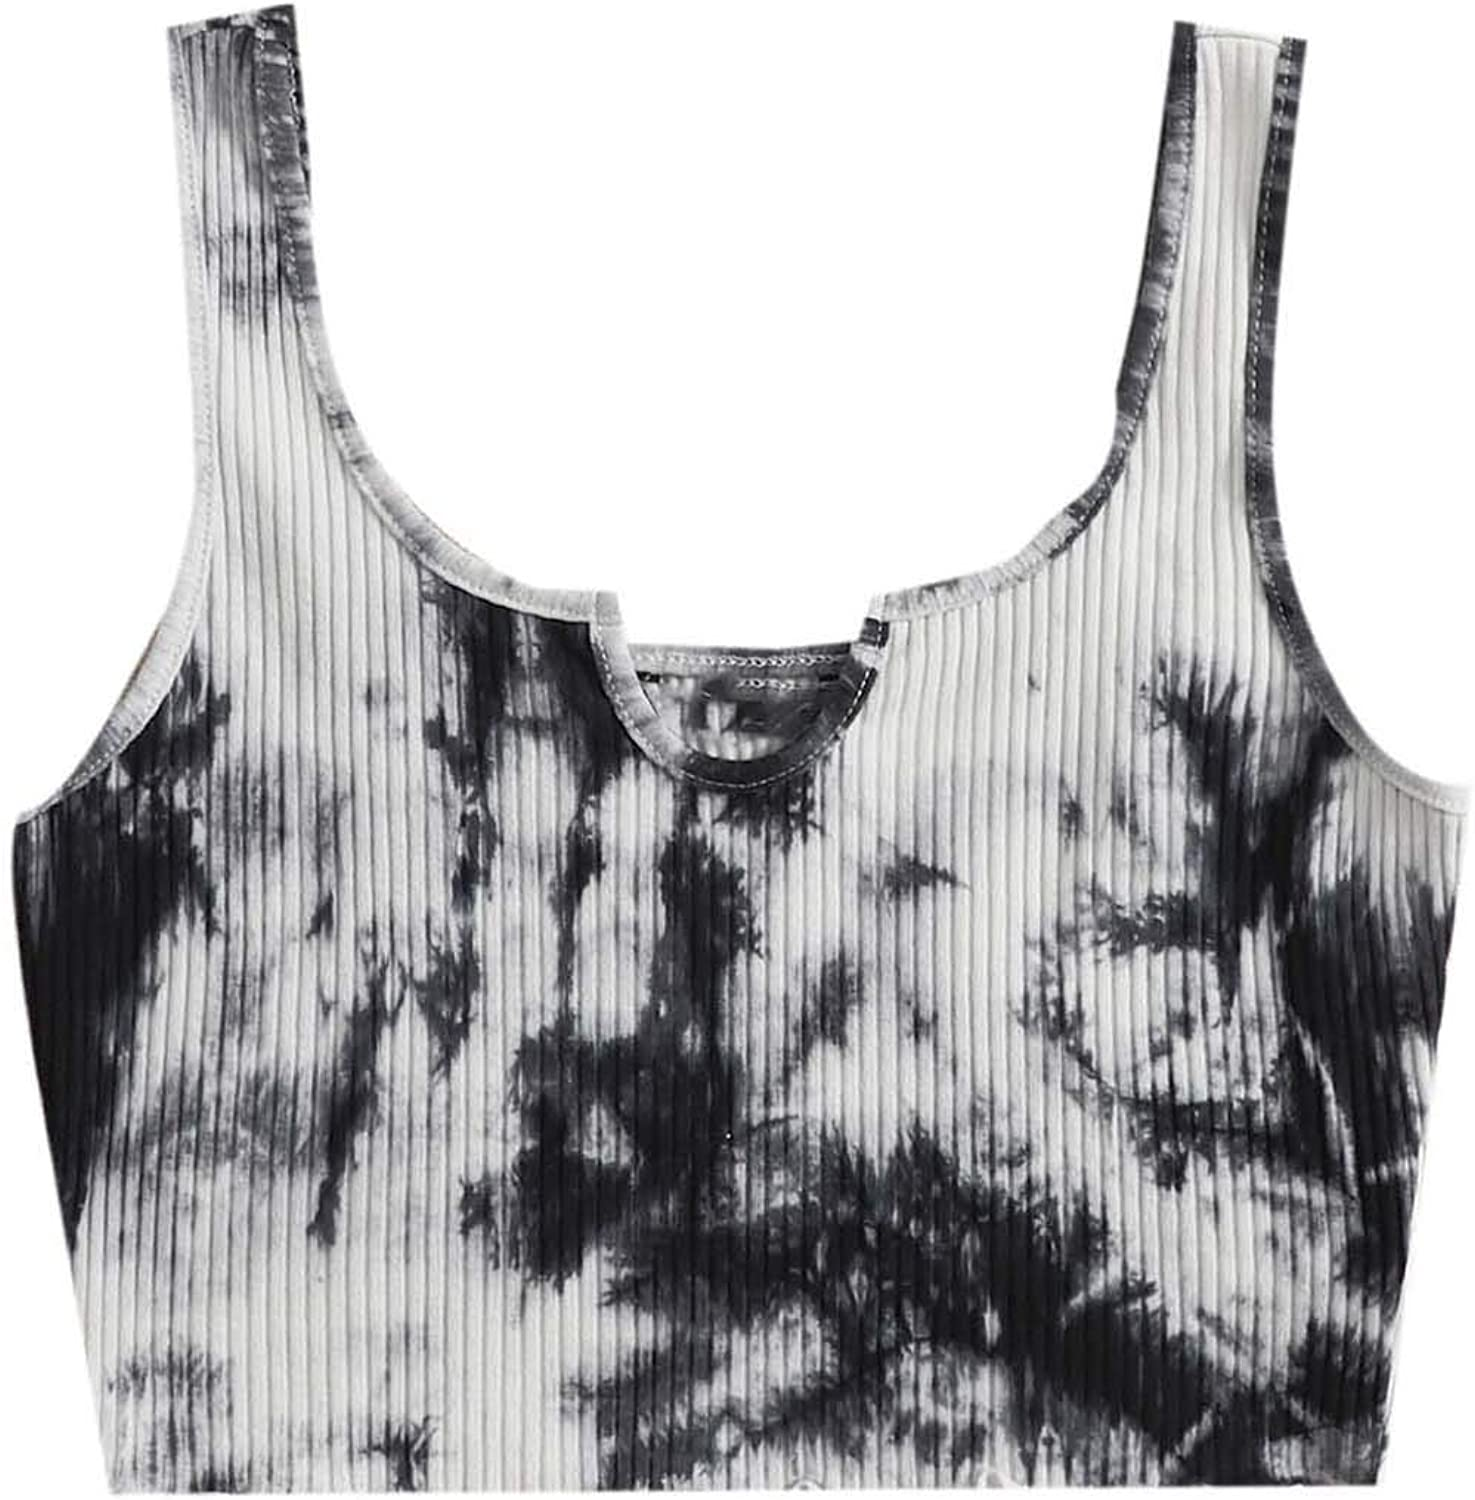 SOLY HUX Women's Casual Notched Neck Sleeveless Tie Dye Ribbed Knit Crop Tank Top Black White